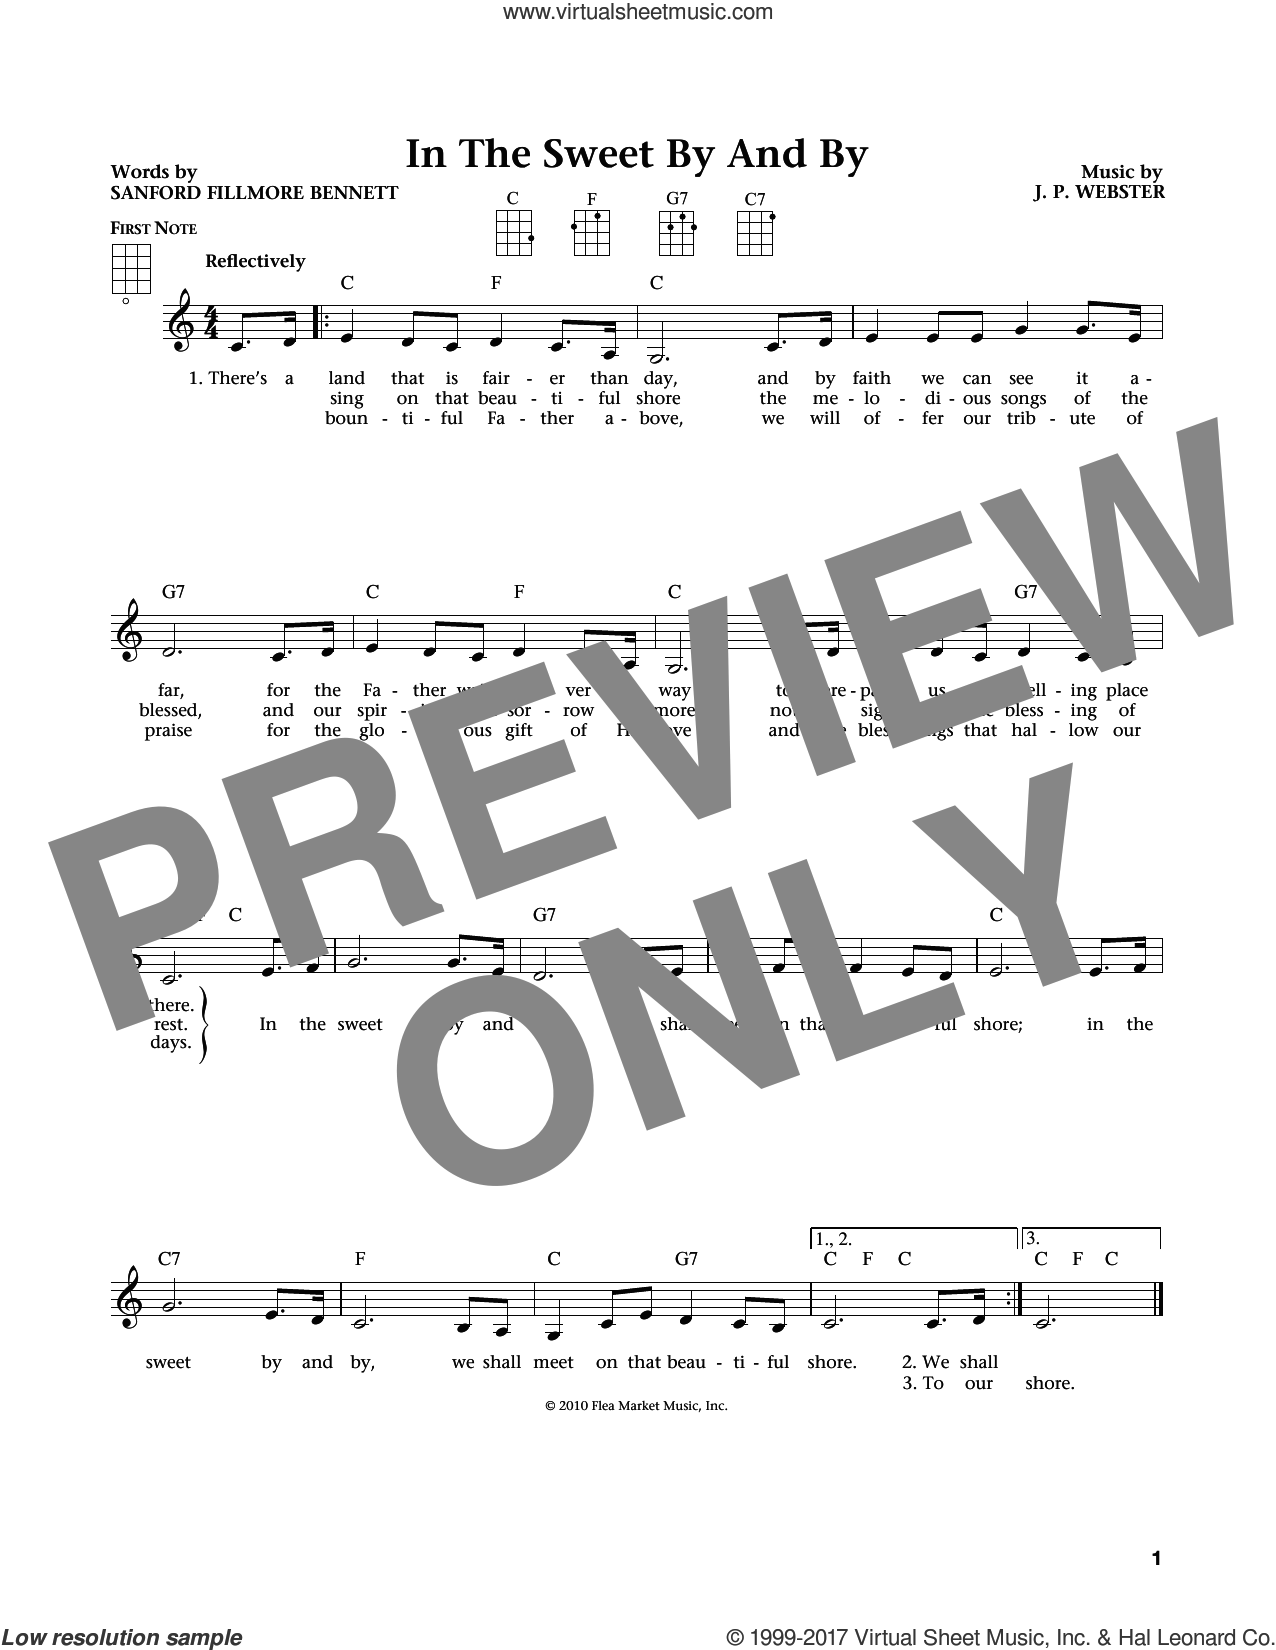 Sweet By And By sheet music for ukulele by Joseph P. Webster, Jim Beloff, Liz Beloff and Sanford Fillmore Bennett, intermediate skill level